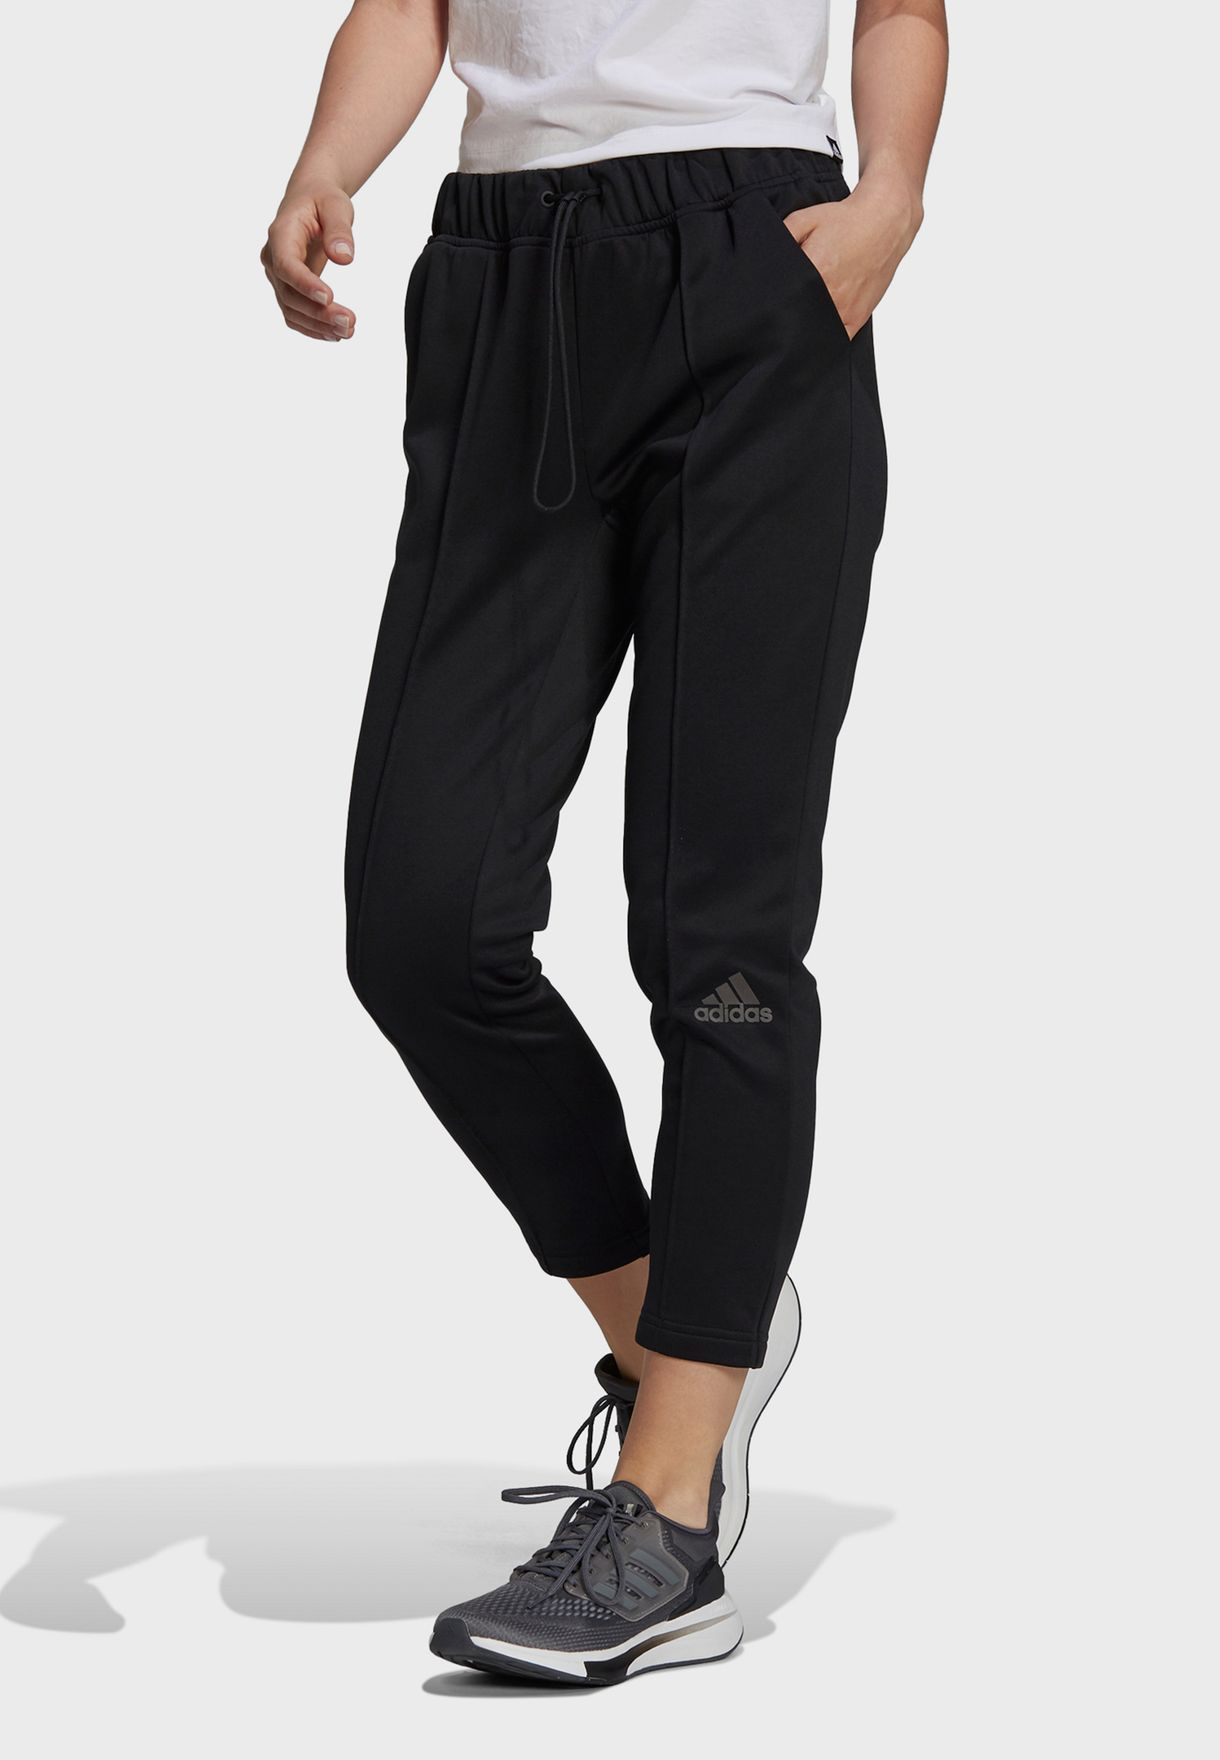 You For You 7/8 Sweatpants